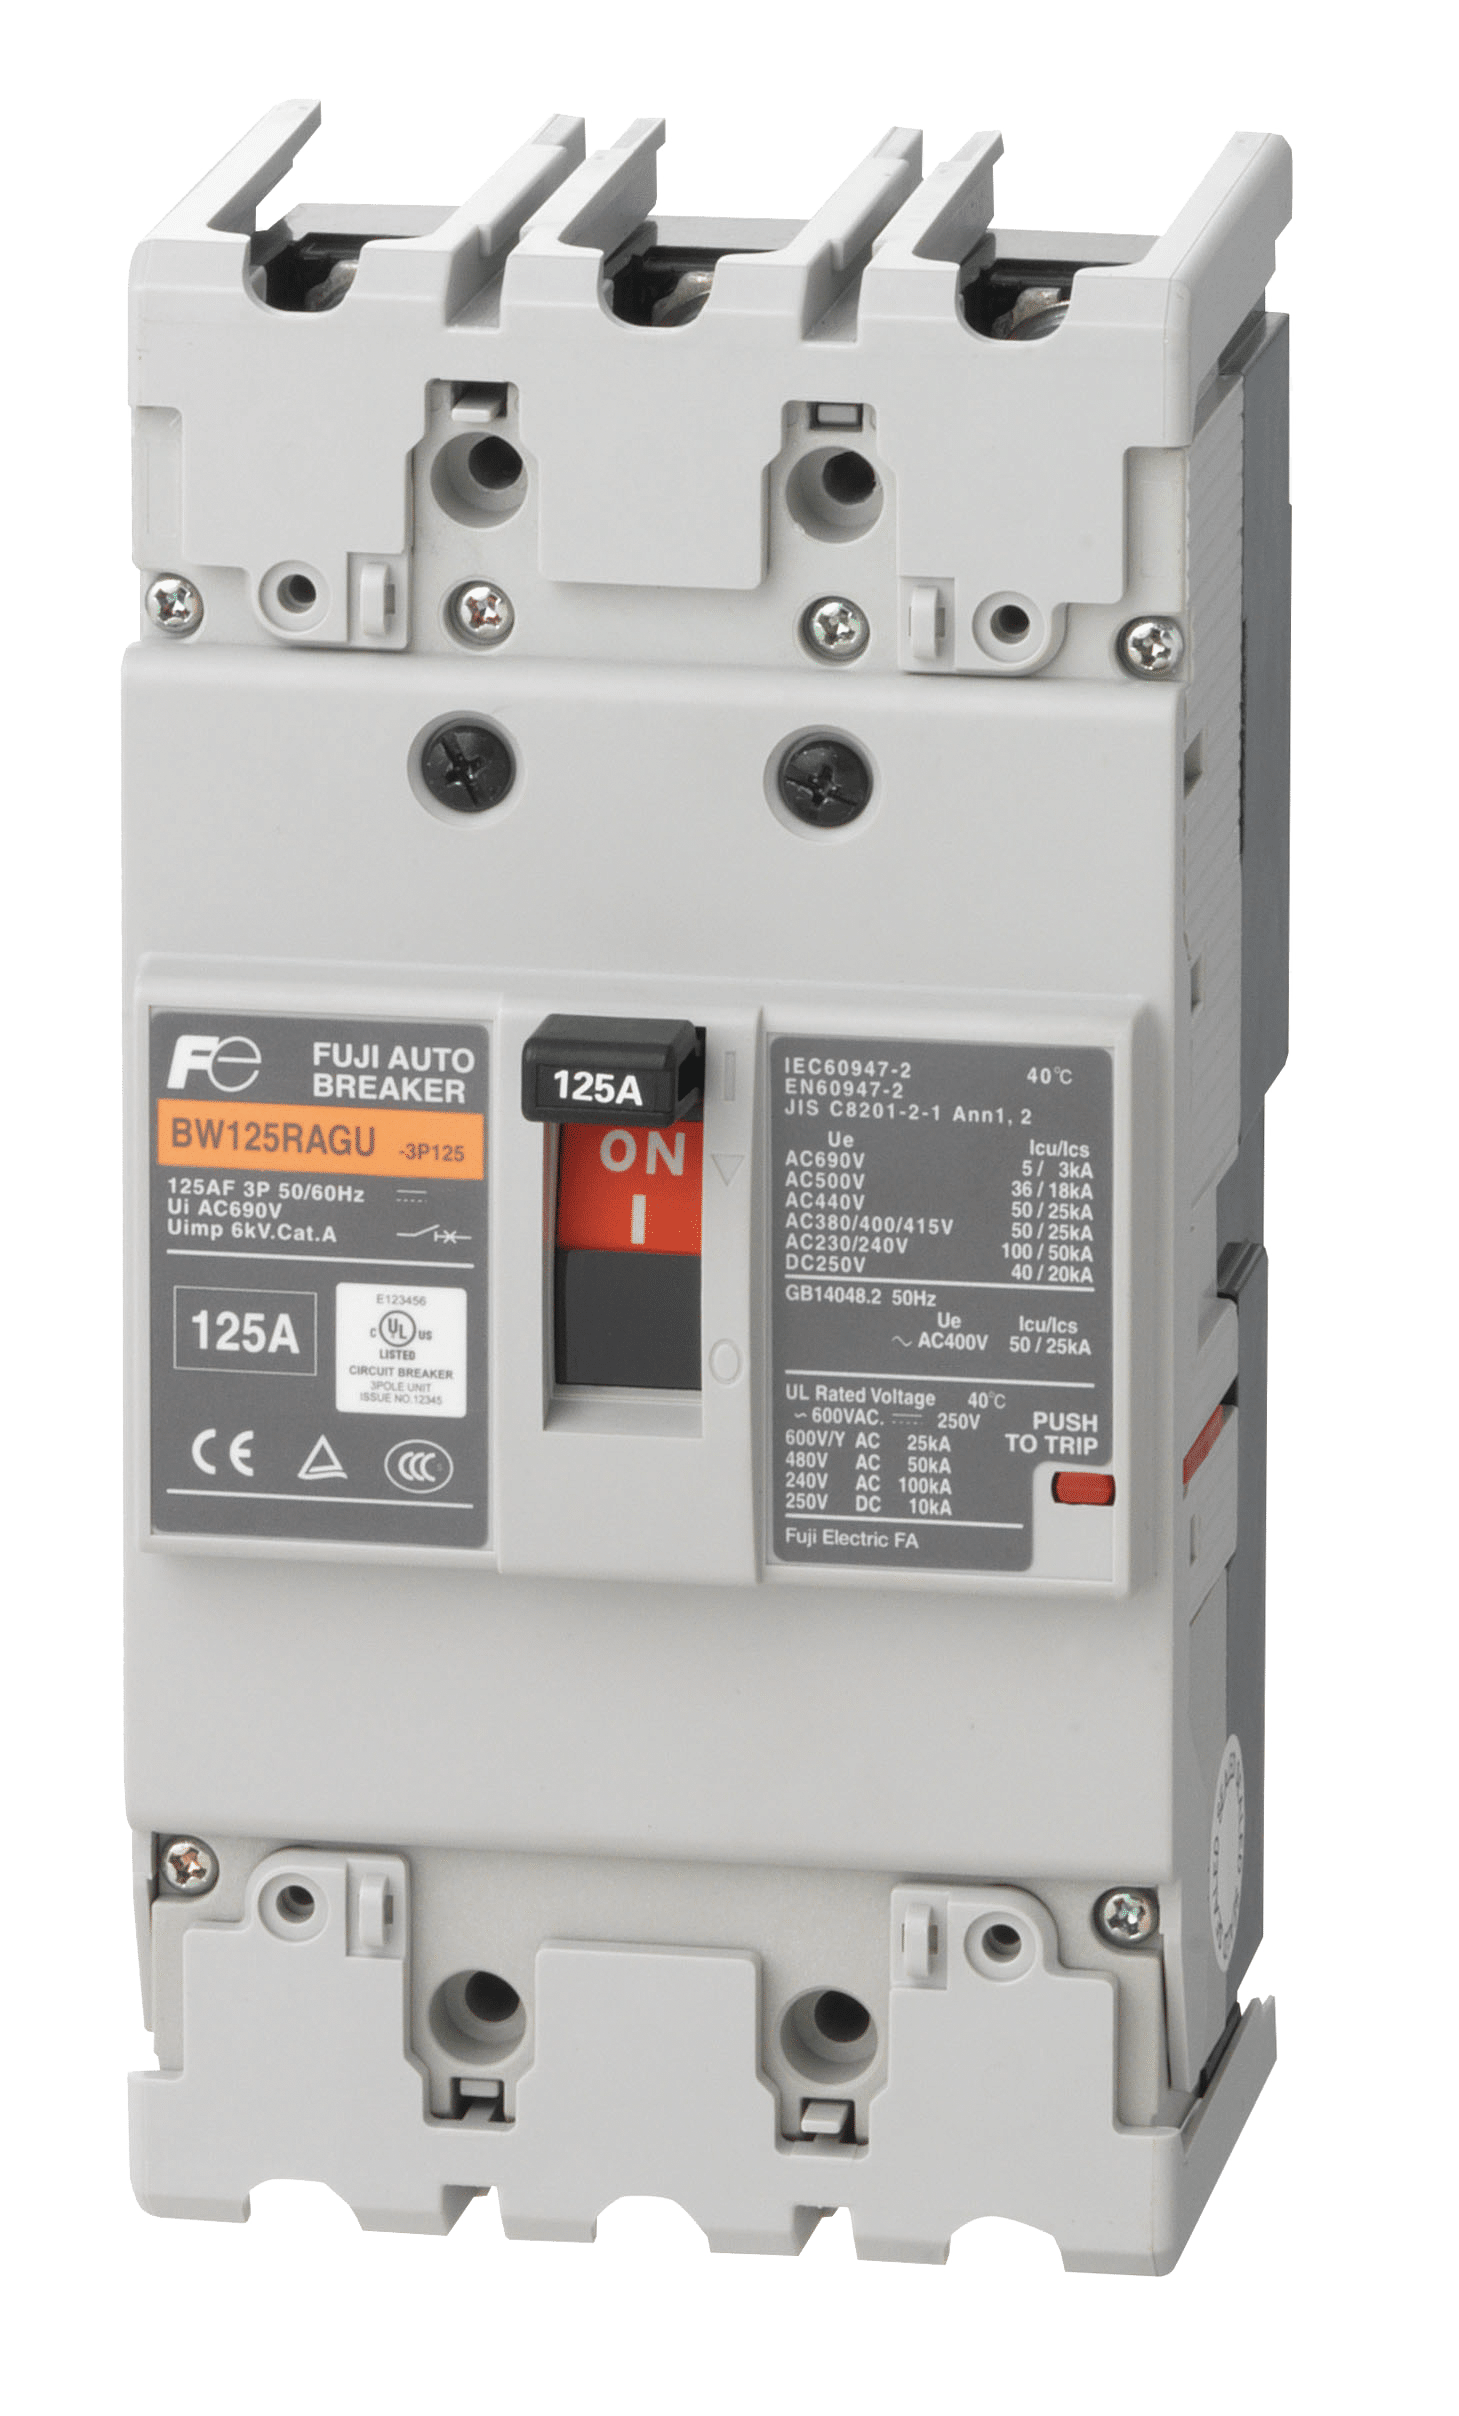 Molded Case Circuit Breakers Mccb Manufacturer Fuji Electric How Do I Change A Fuse In Breaker Box